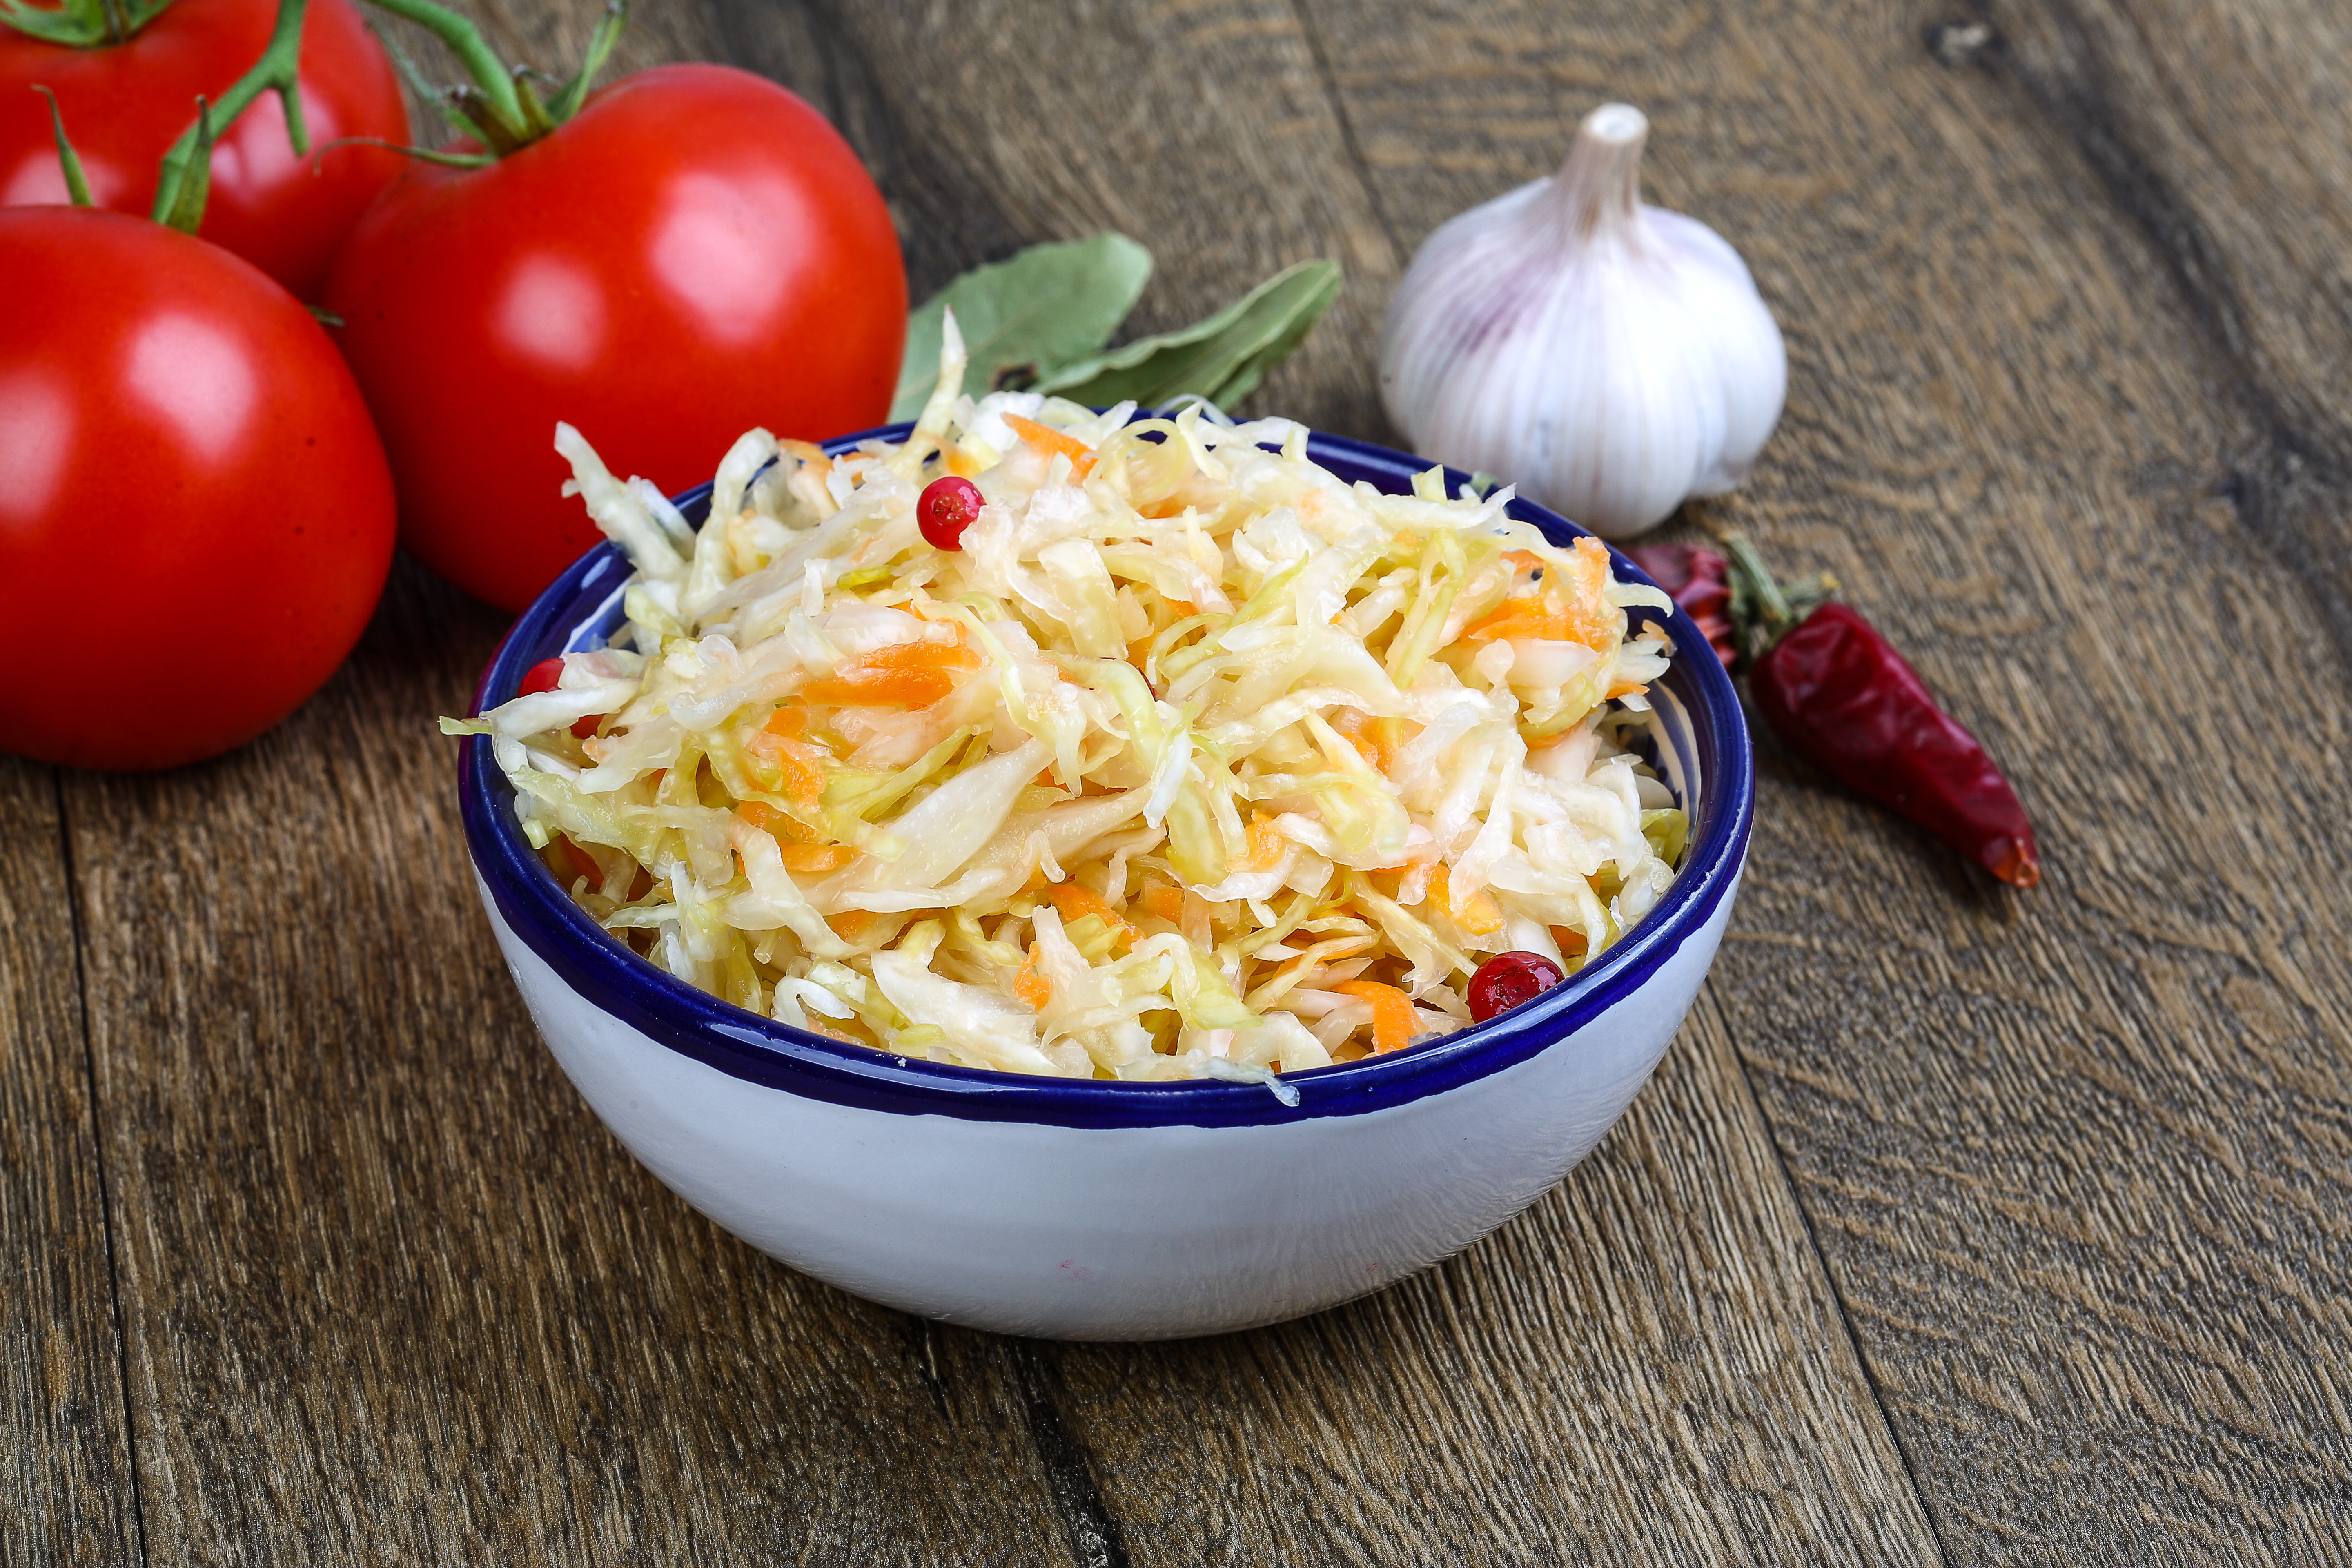 Fermented cabbage - Sauerkraut with herbs and spices on the wood background